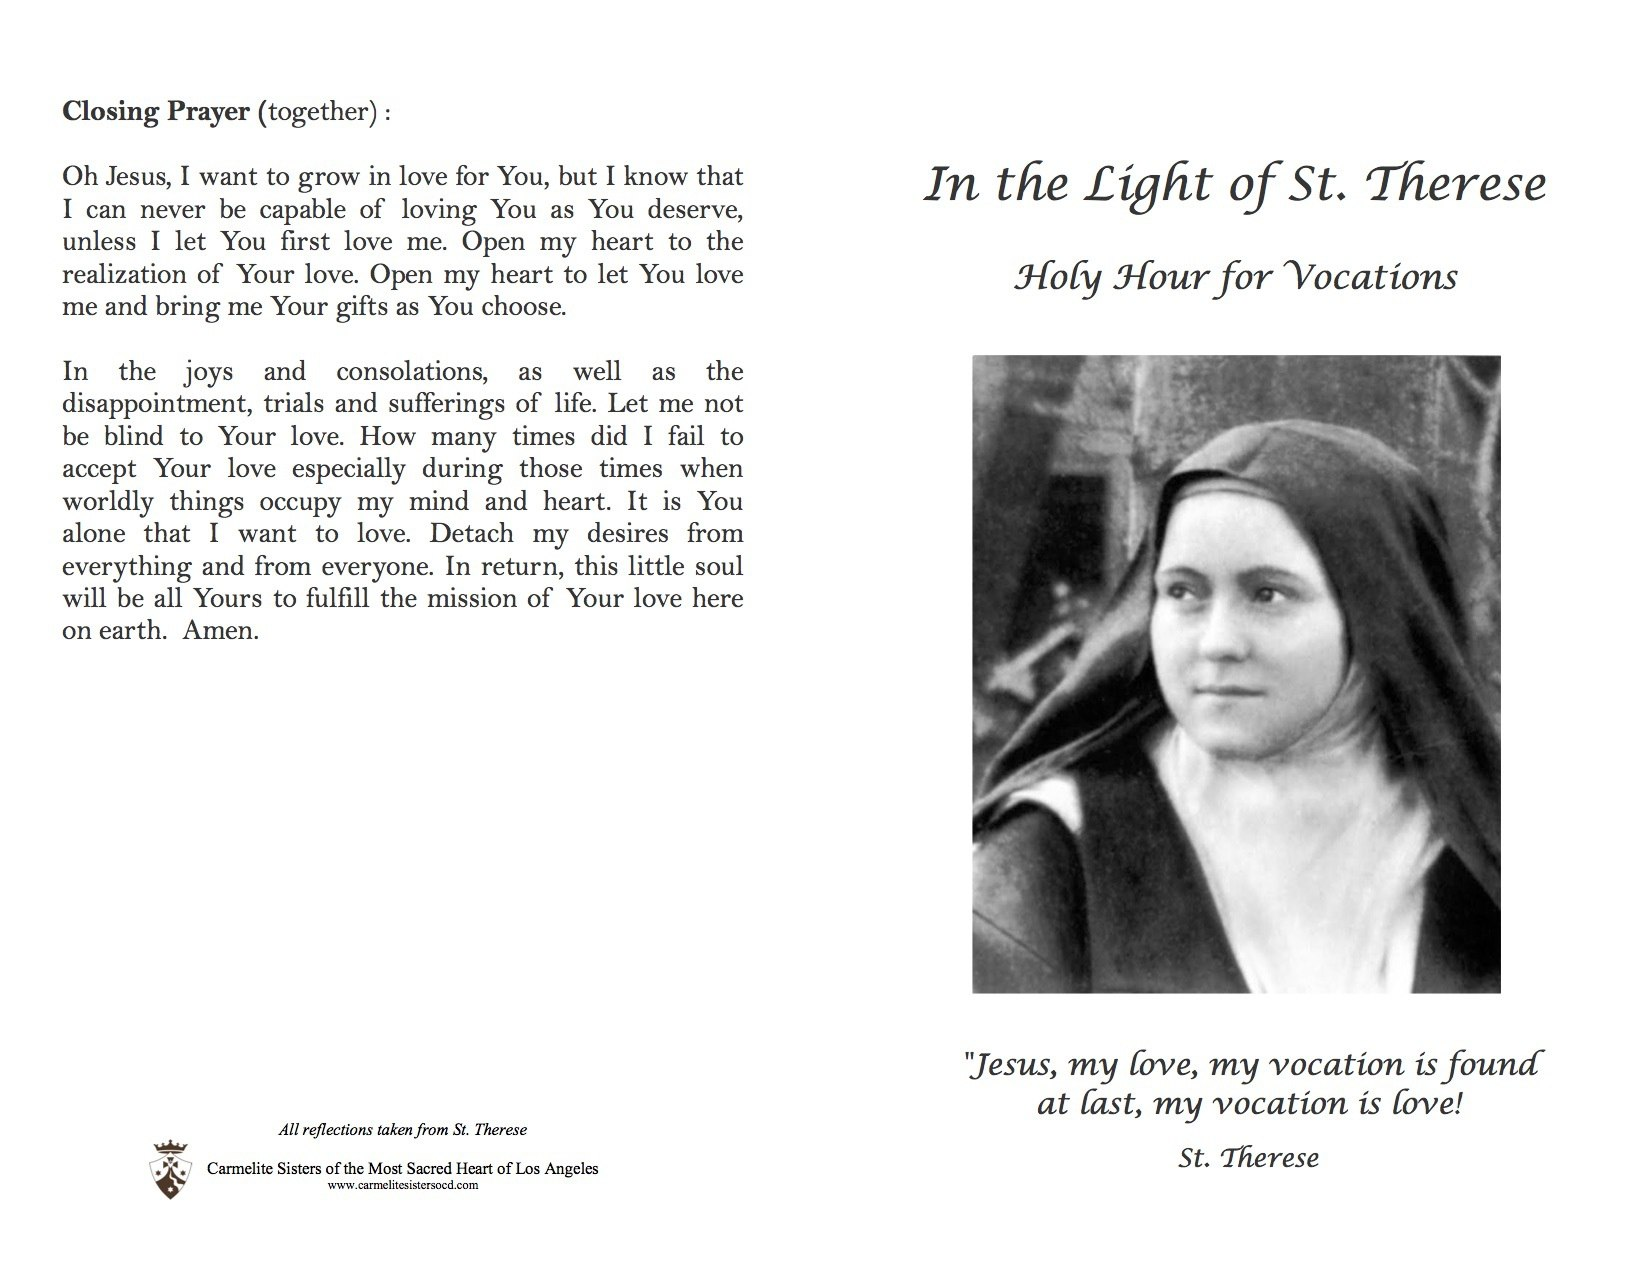 Prayers for Vocations | Carmelite Sisters of the Most Sacred Heart